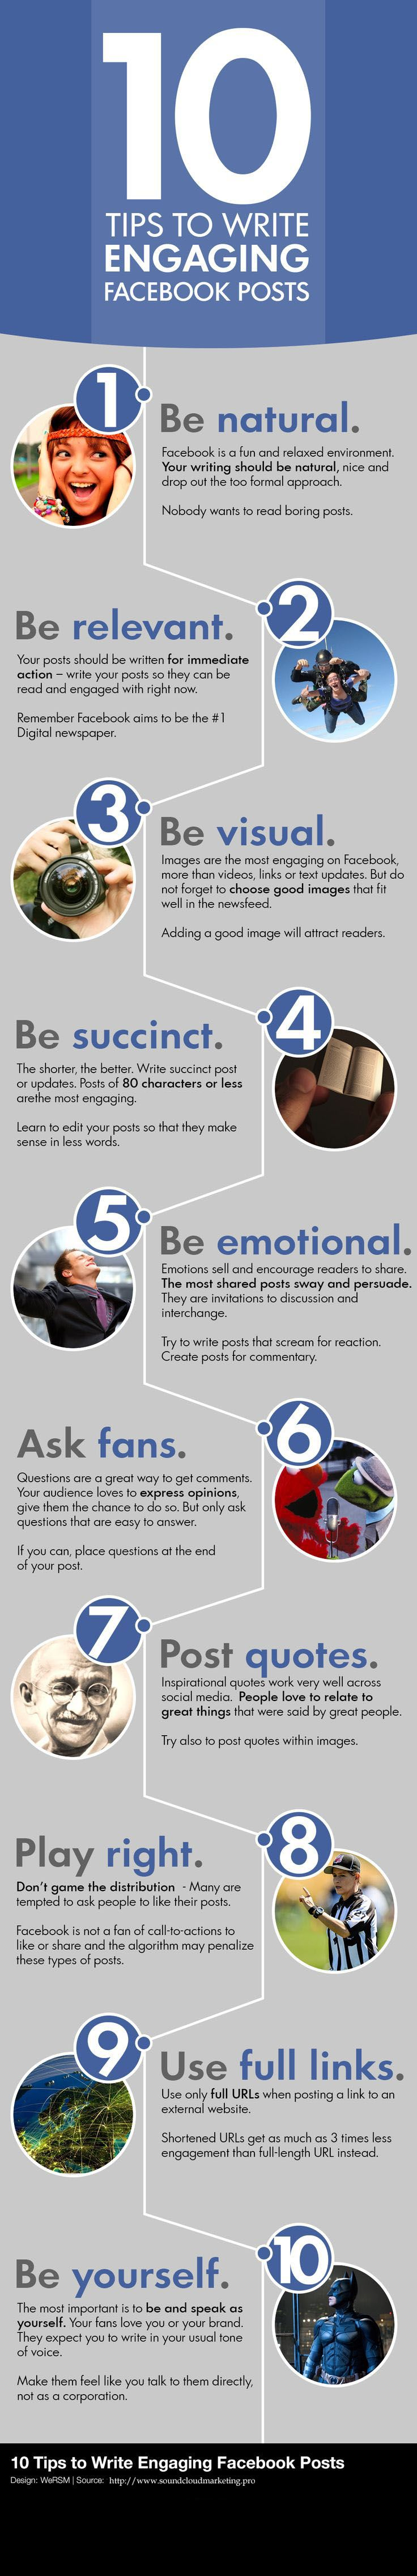 10 Tips to Write Engaging #Facebook Posts. #infographic #socialmedia #SMM #FacebookTips